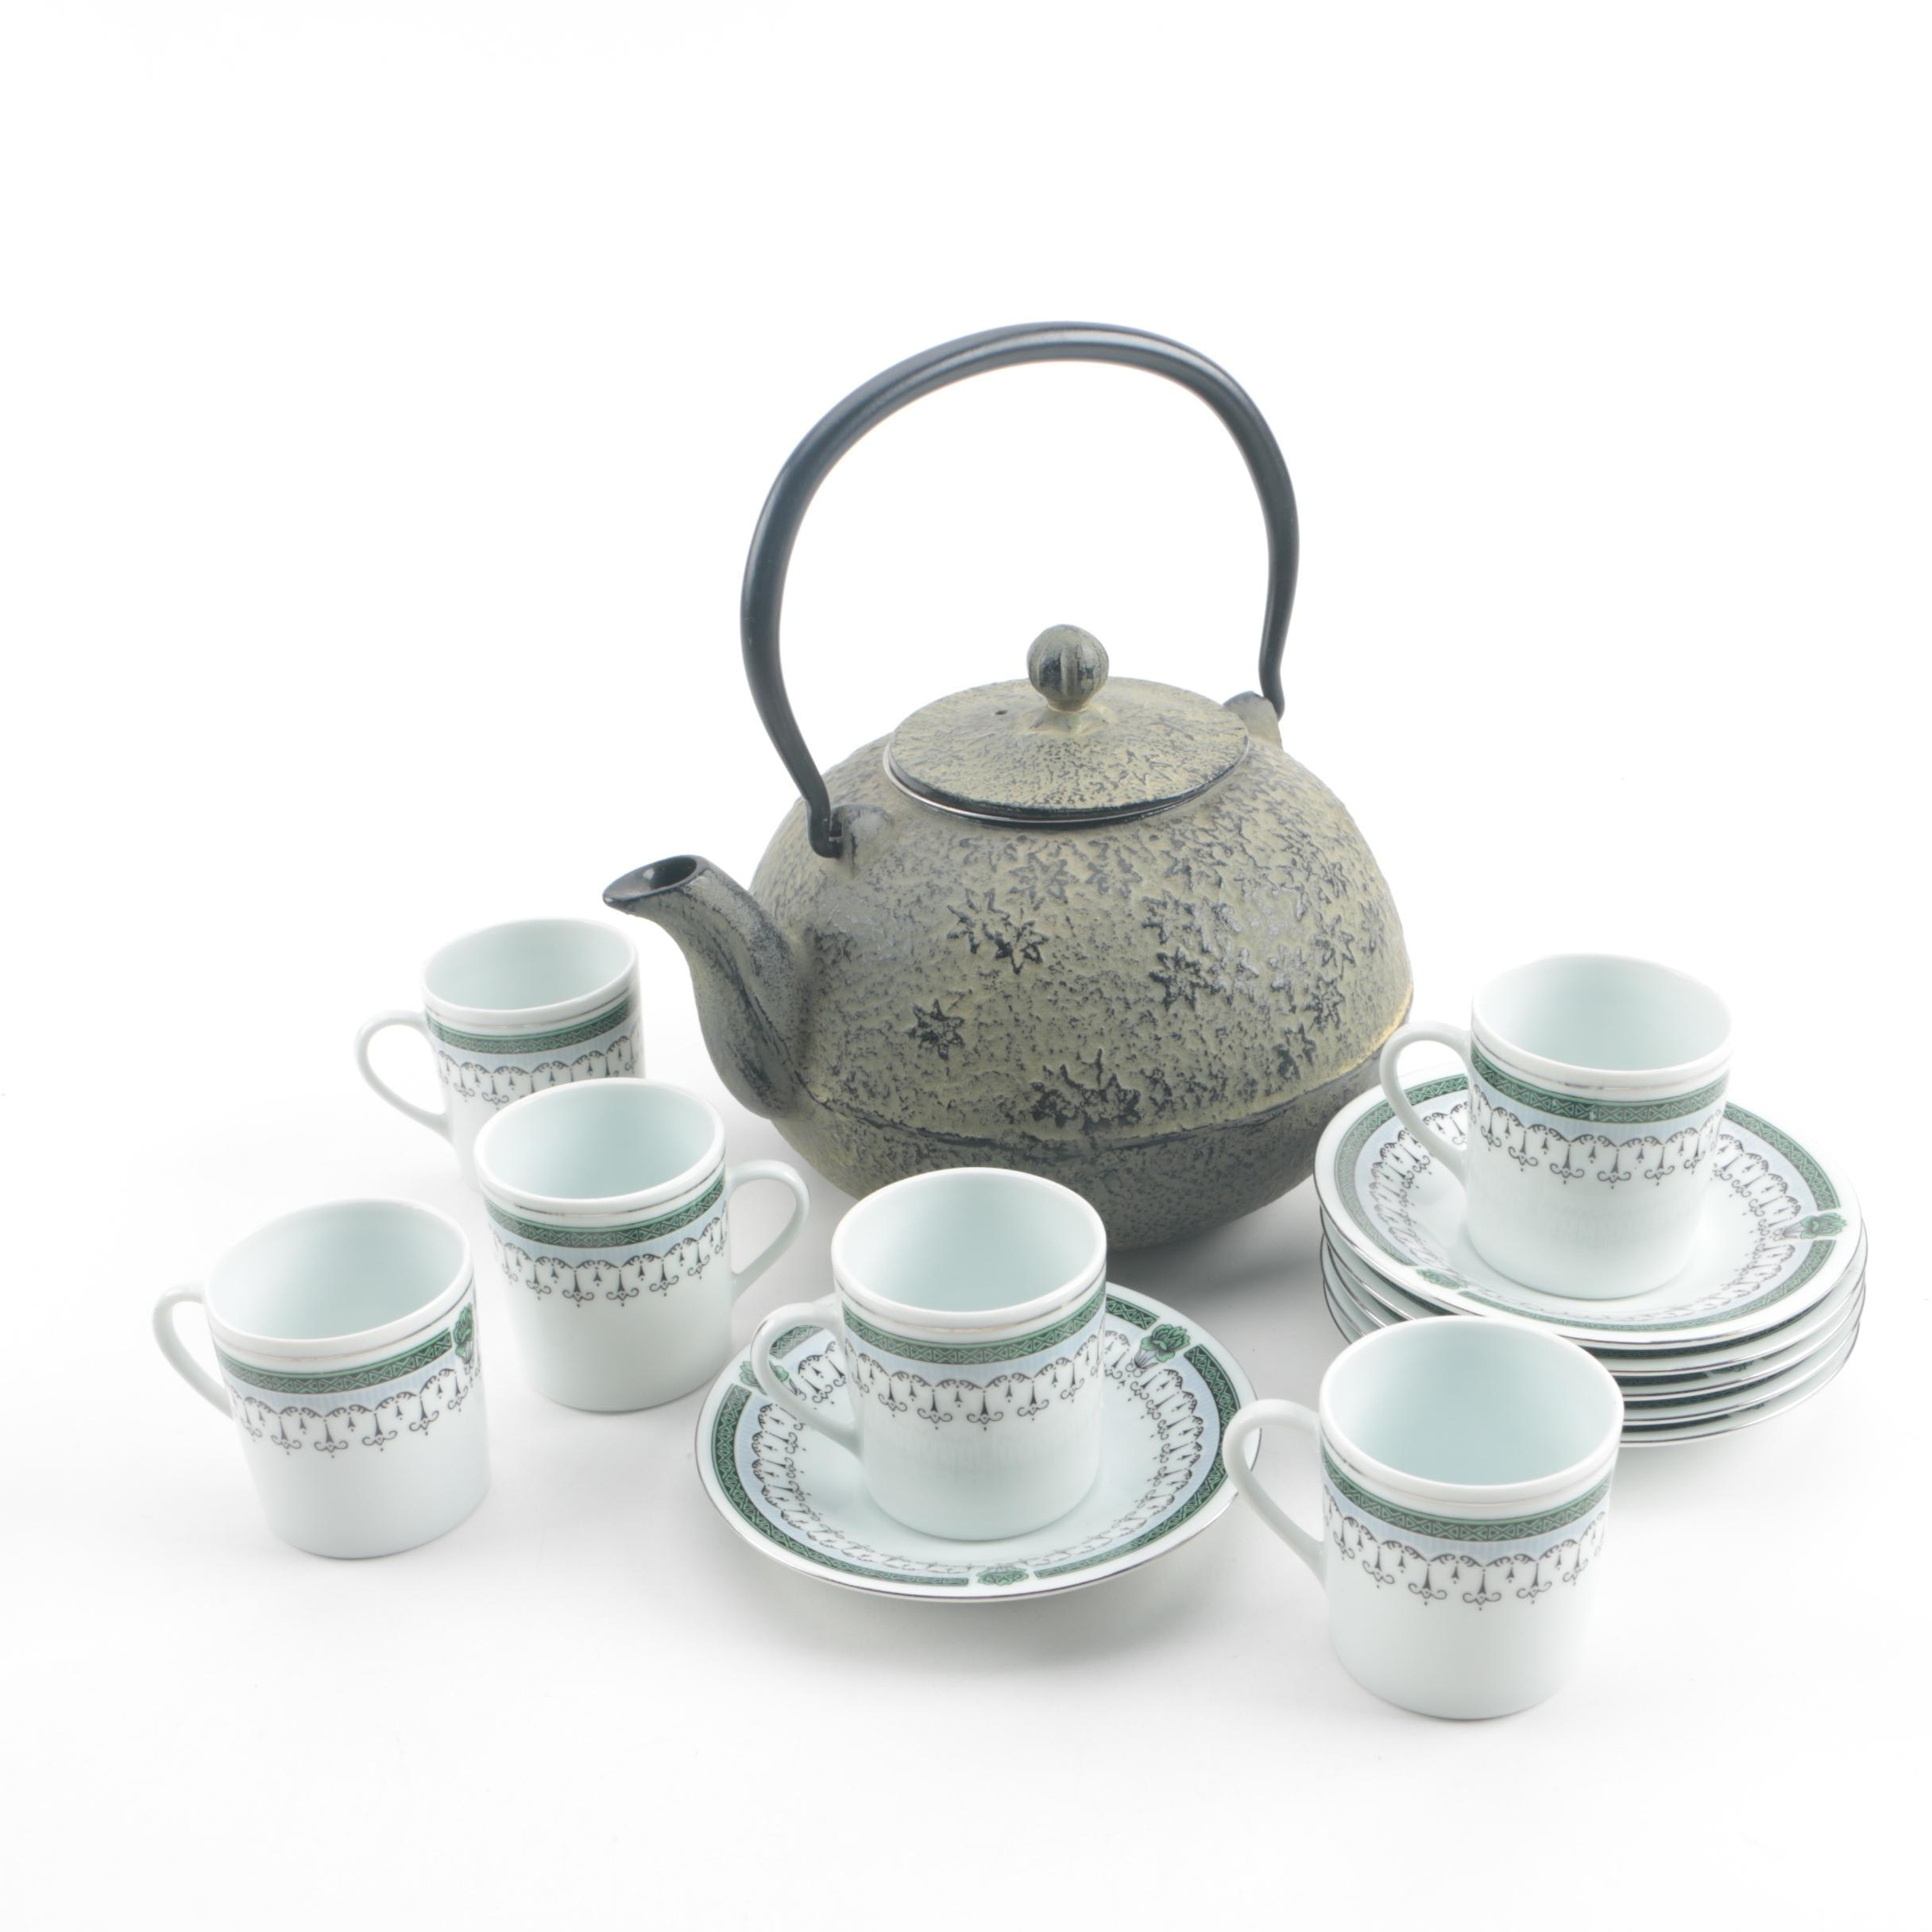 Chinese Cast Iron Teapot with Porcelain Flat Cups and Saucers